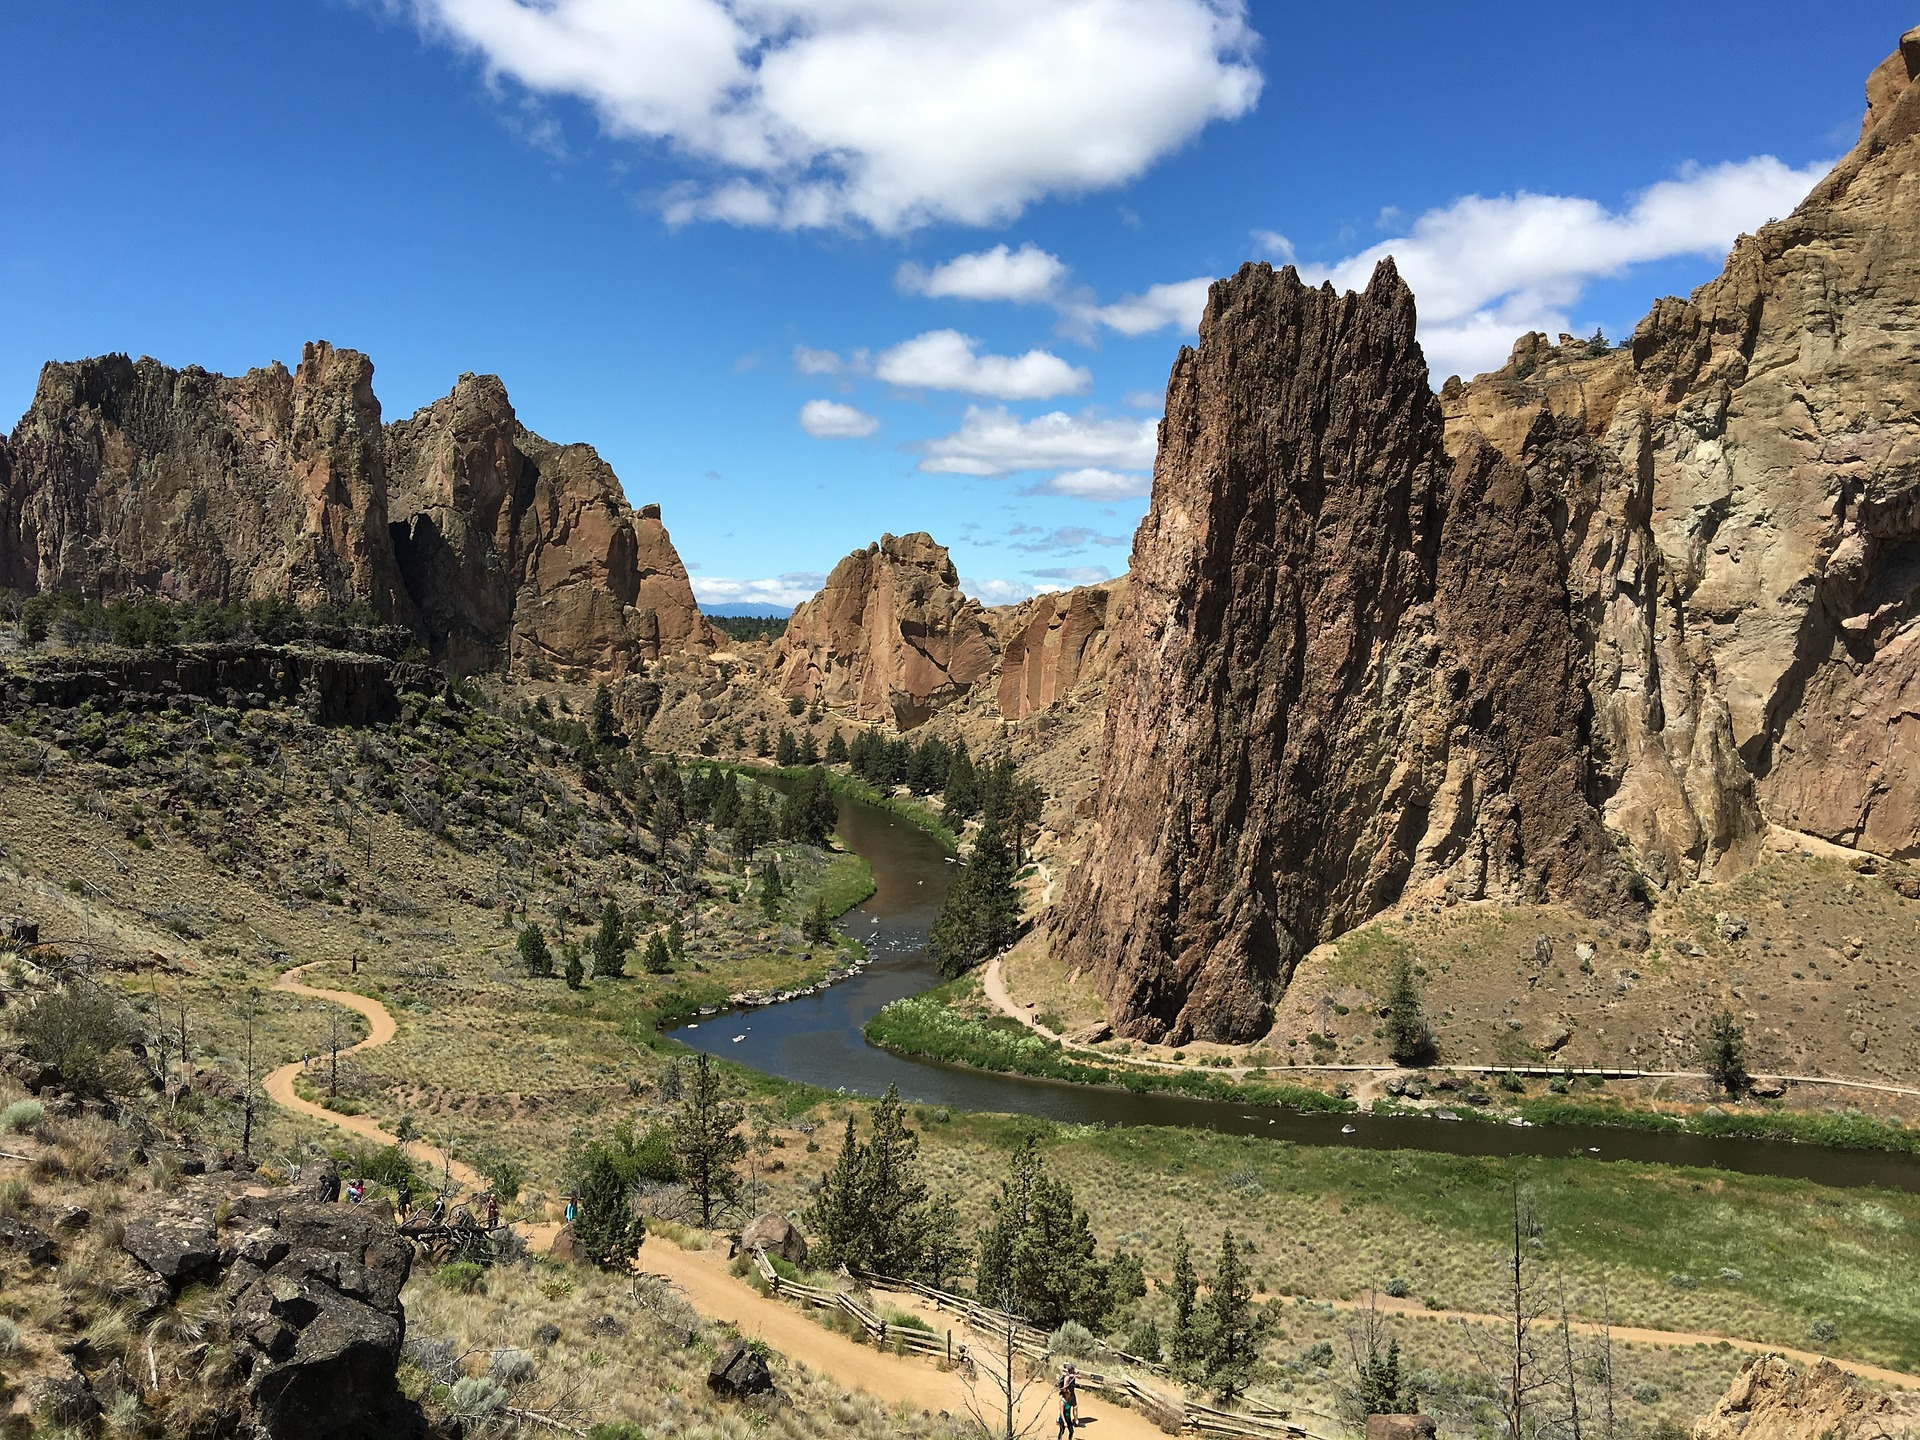 smith-rock-oregon-2114673_1920